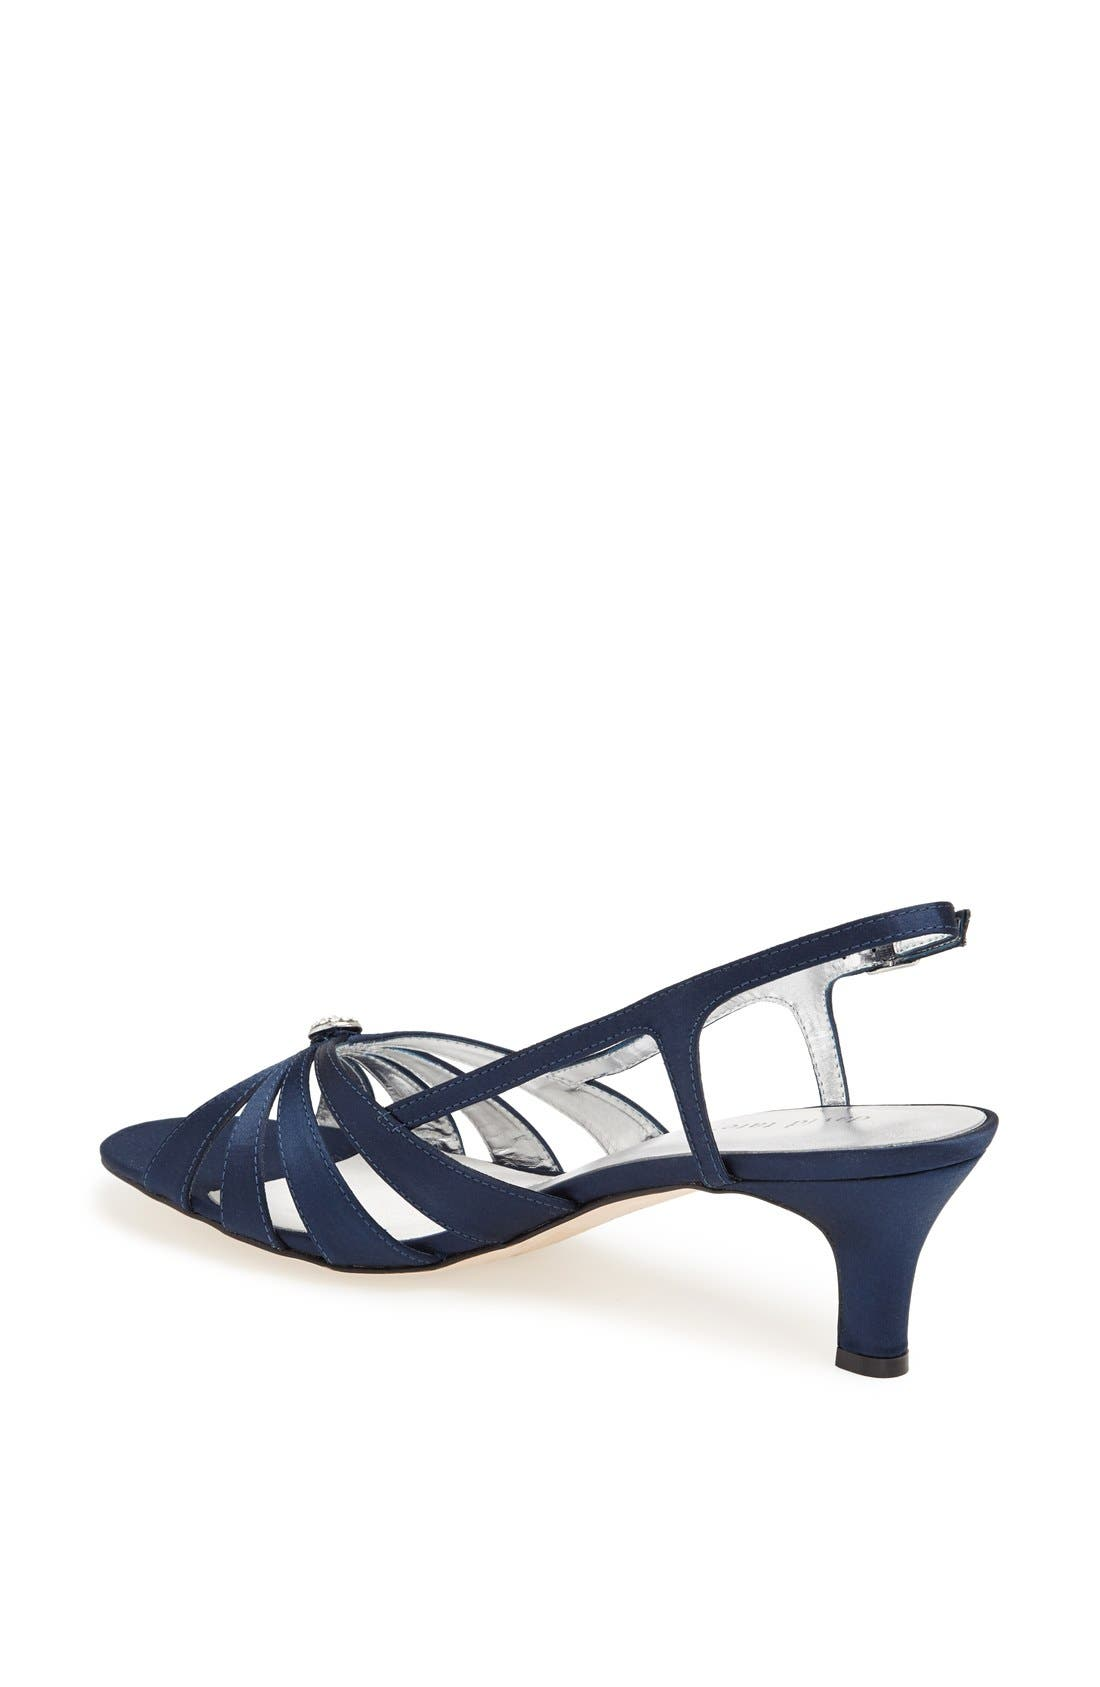 'Rosette' Sandal,                             Alternate thumbnail 2, color,                             NAVY